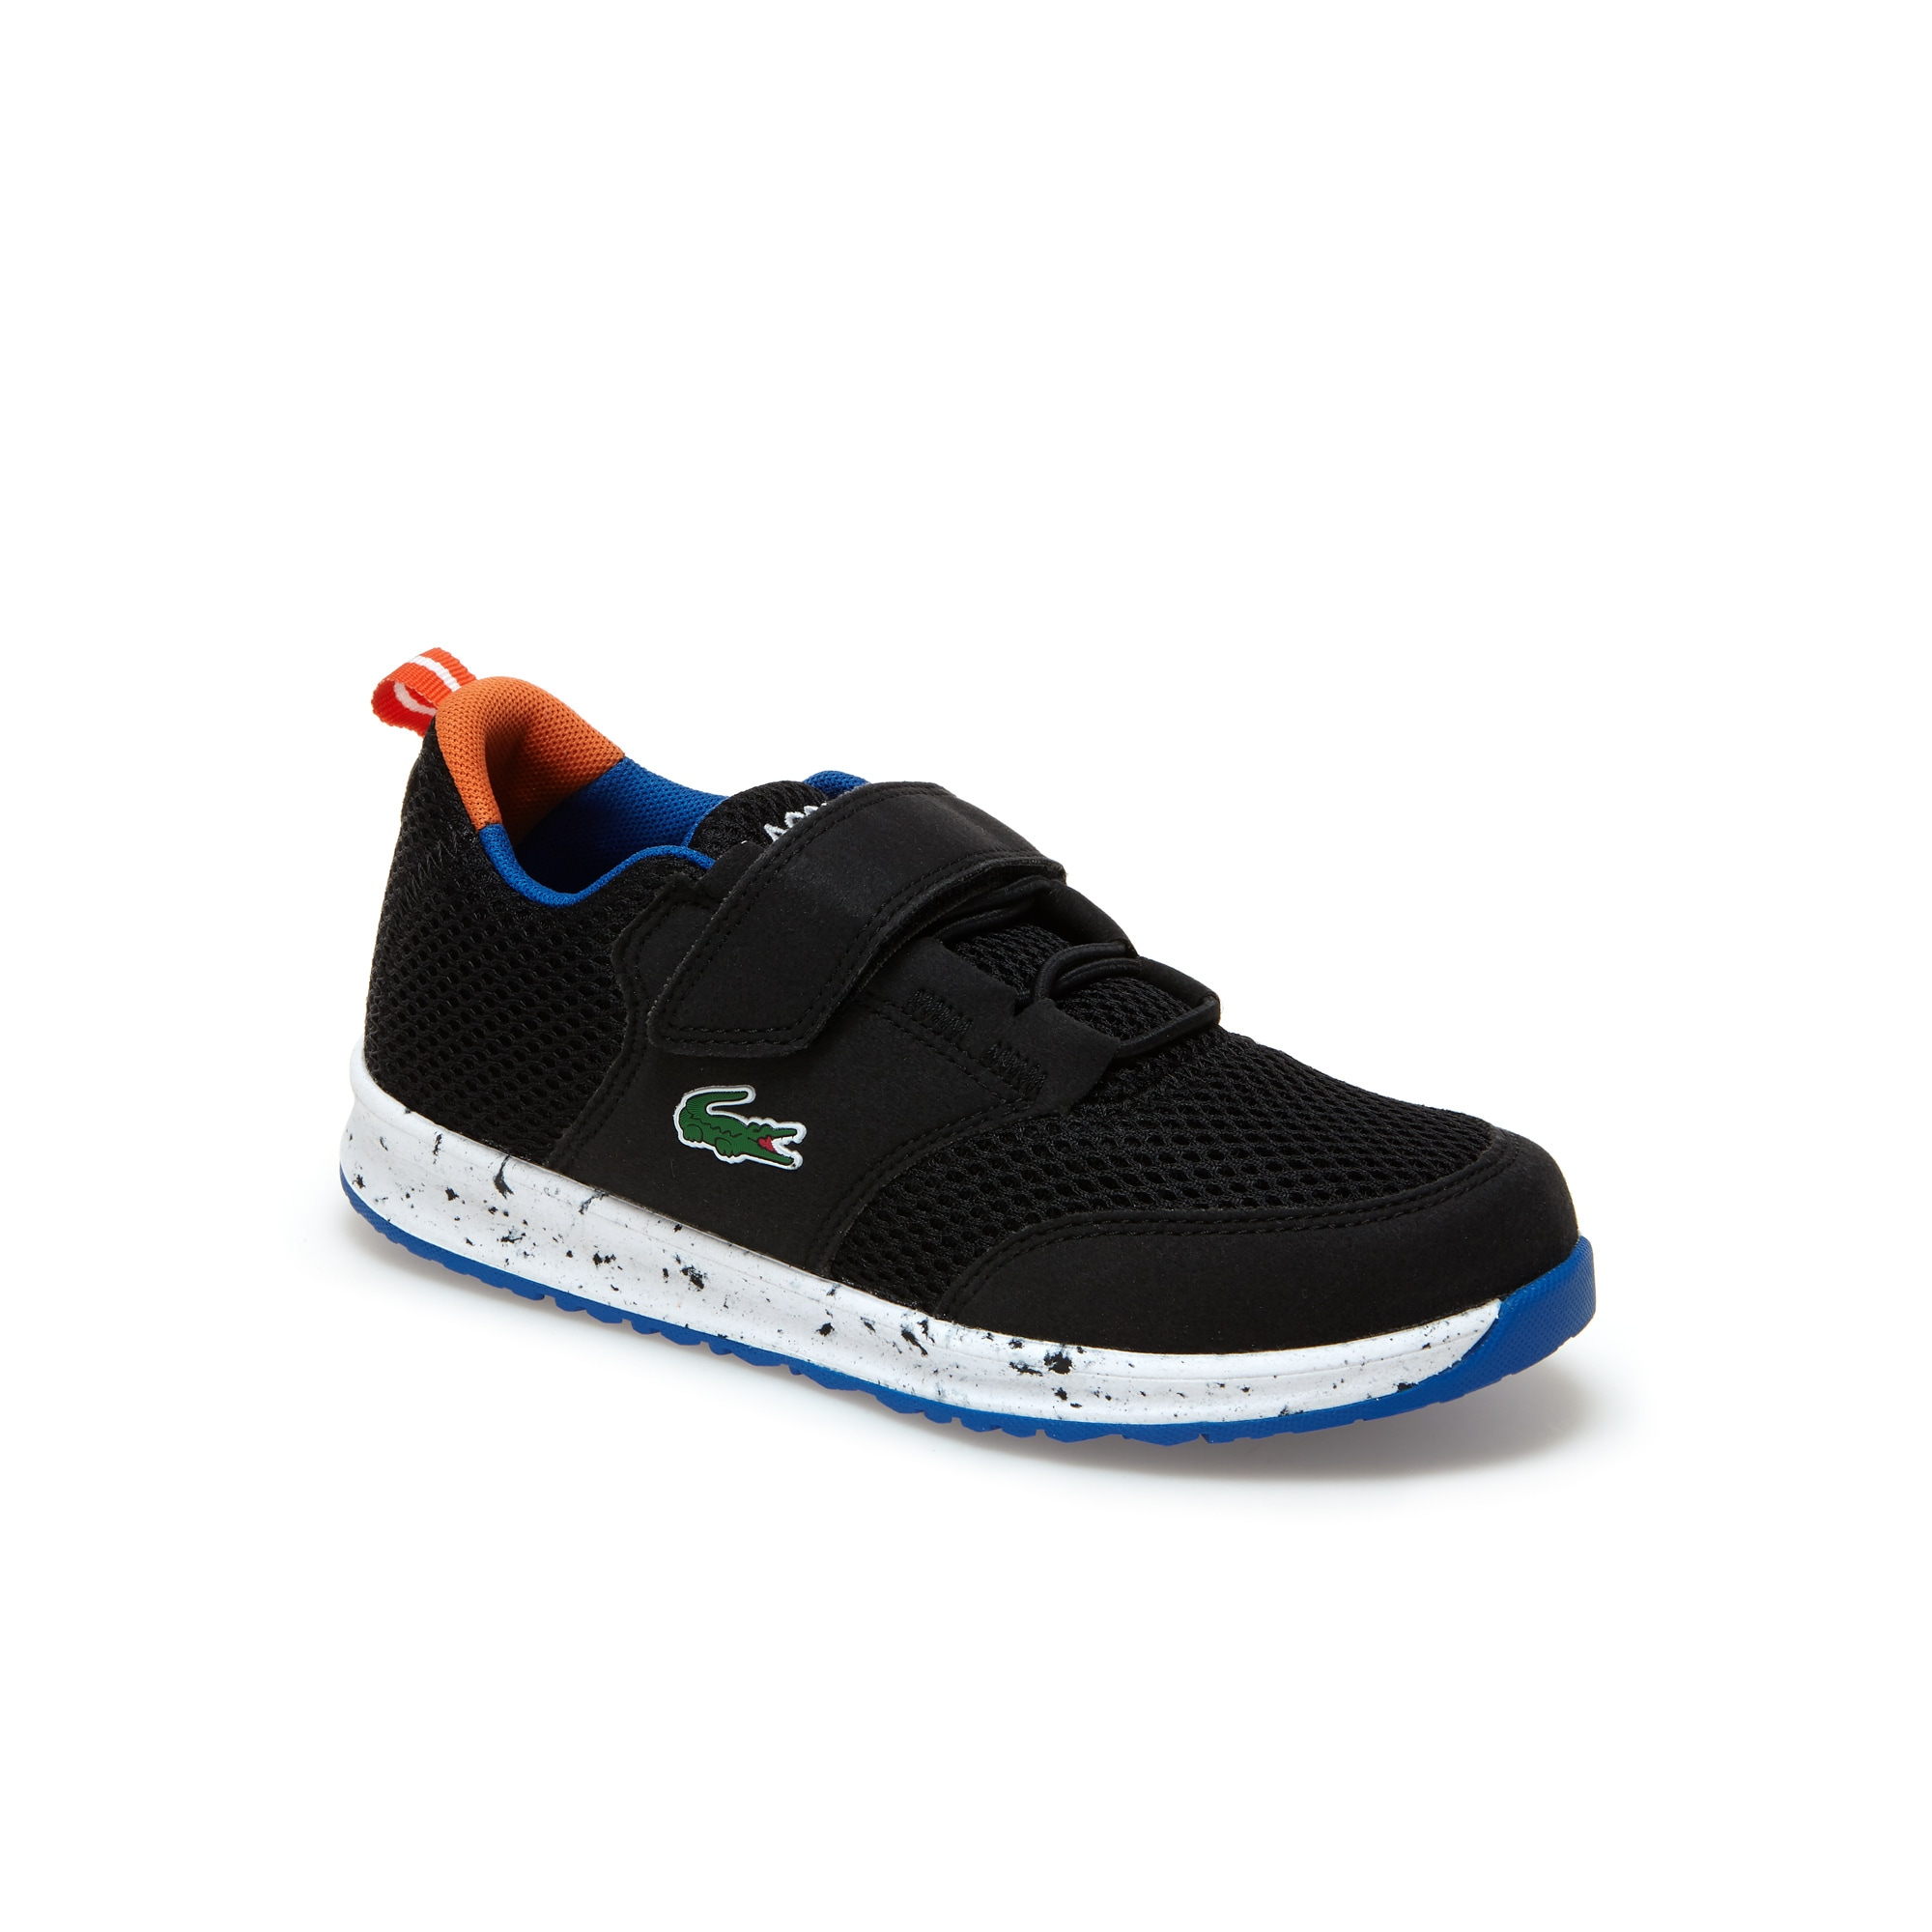 Sneakers L.ight bambini in tessuto e similpelle